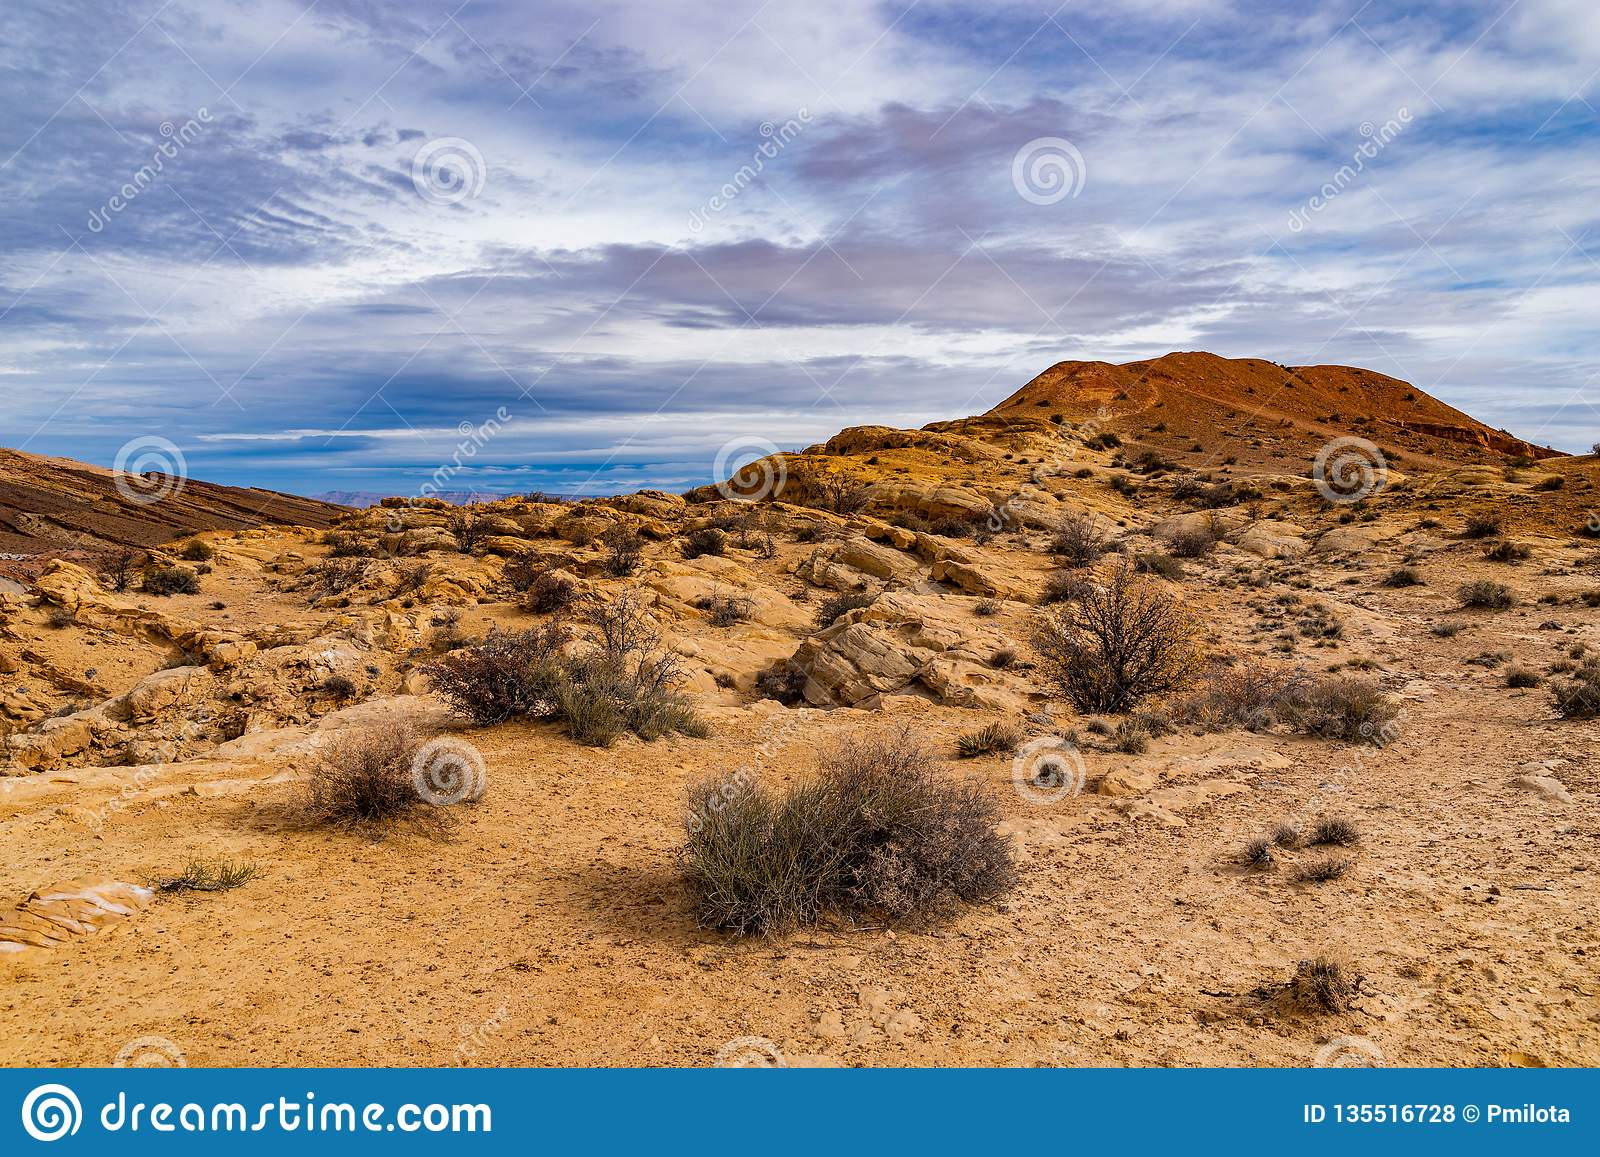 Desert Trails of the Utah Desert